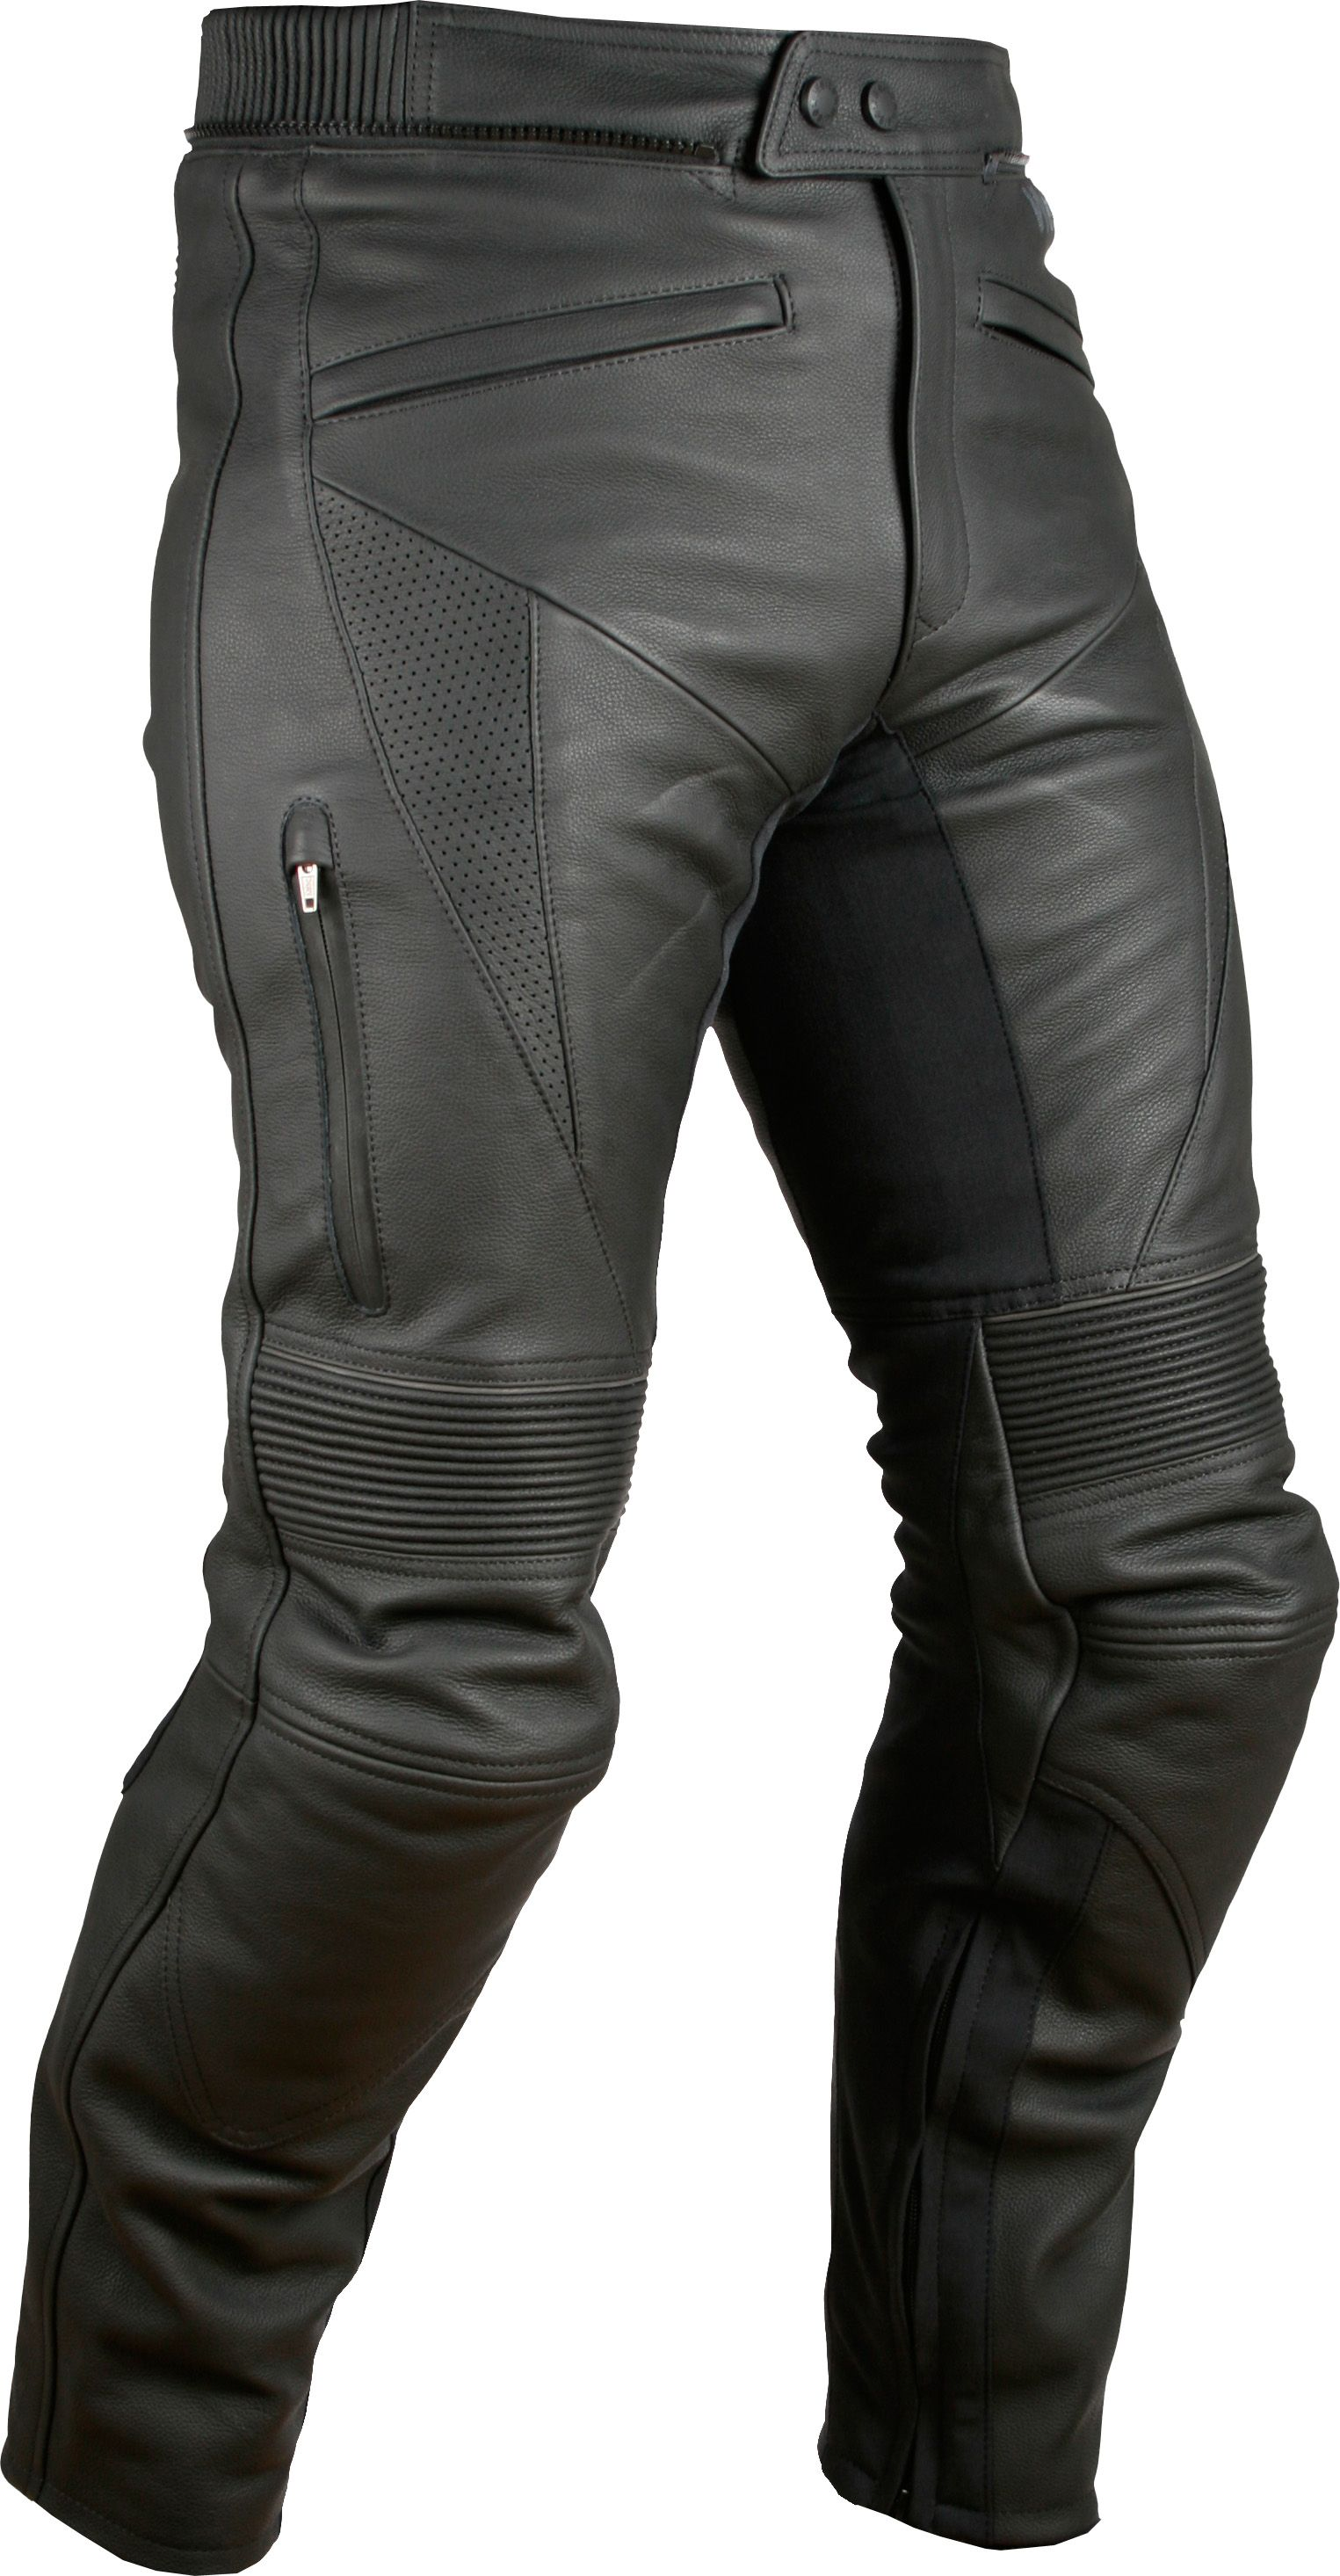 Internal 8 And 360 Degree Zipper For Attaching Weise Jackets